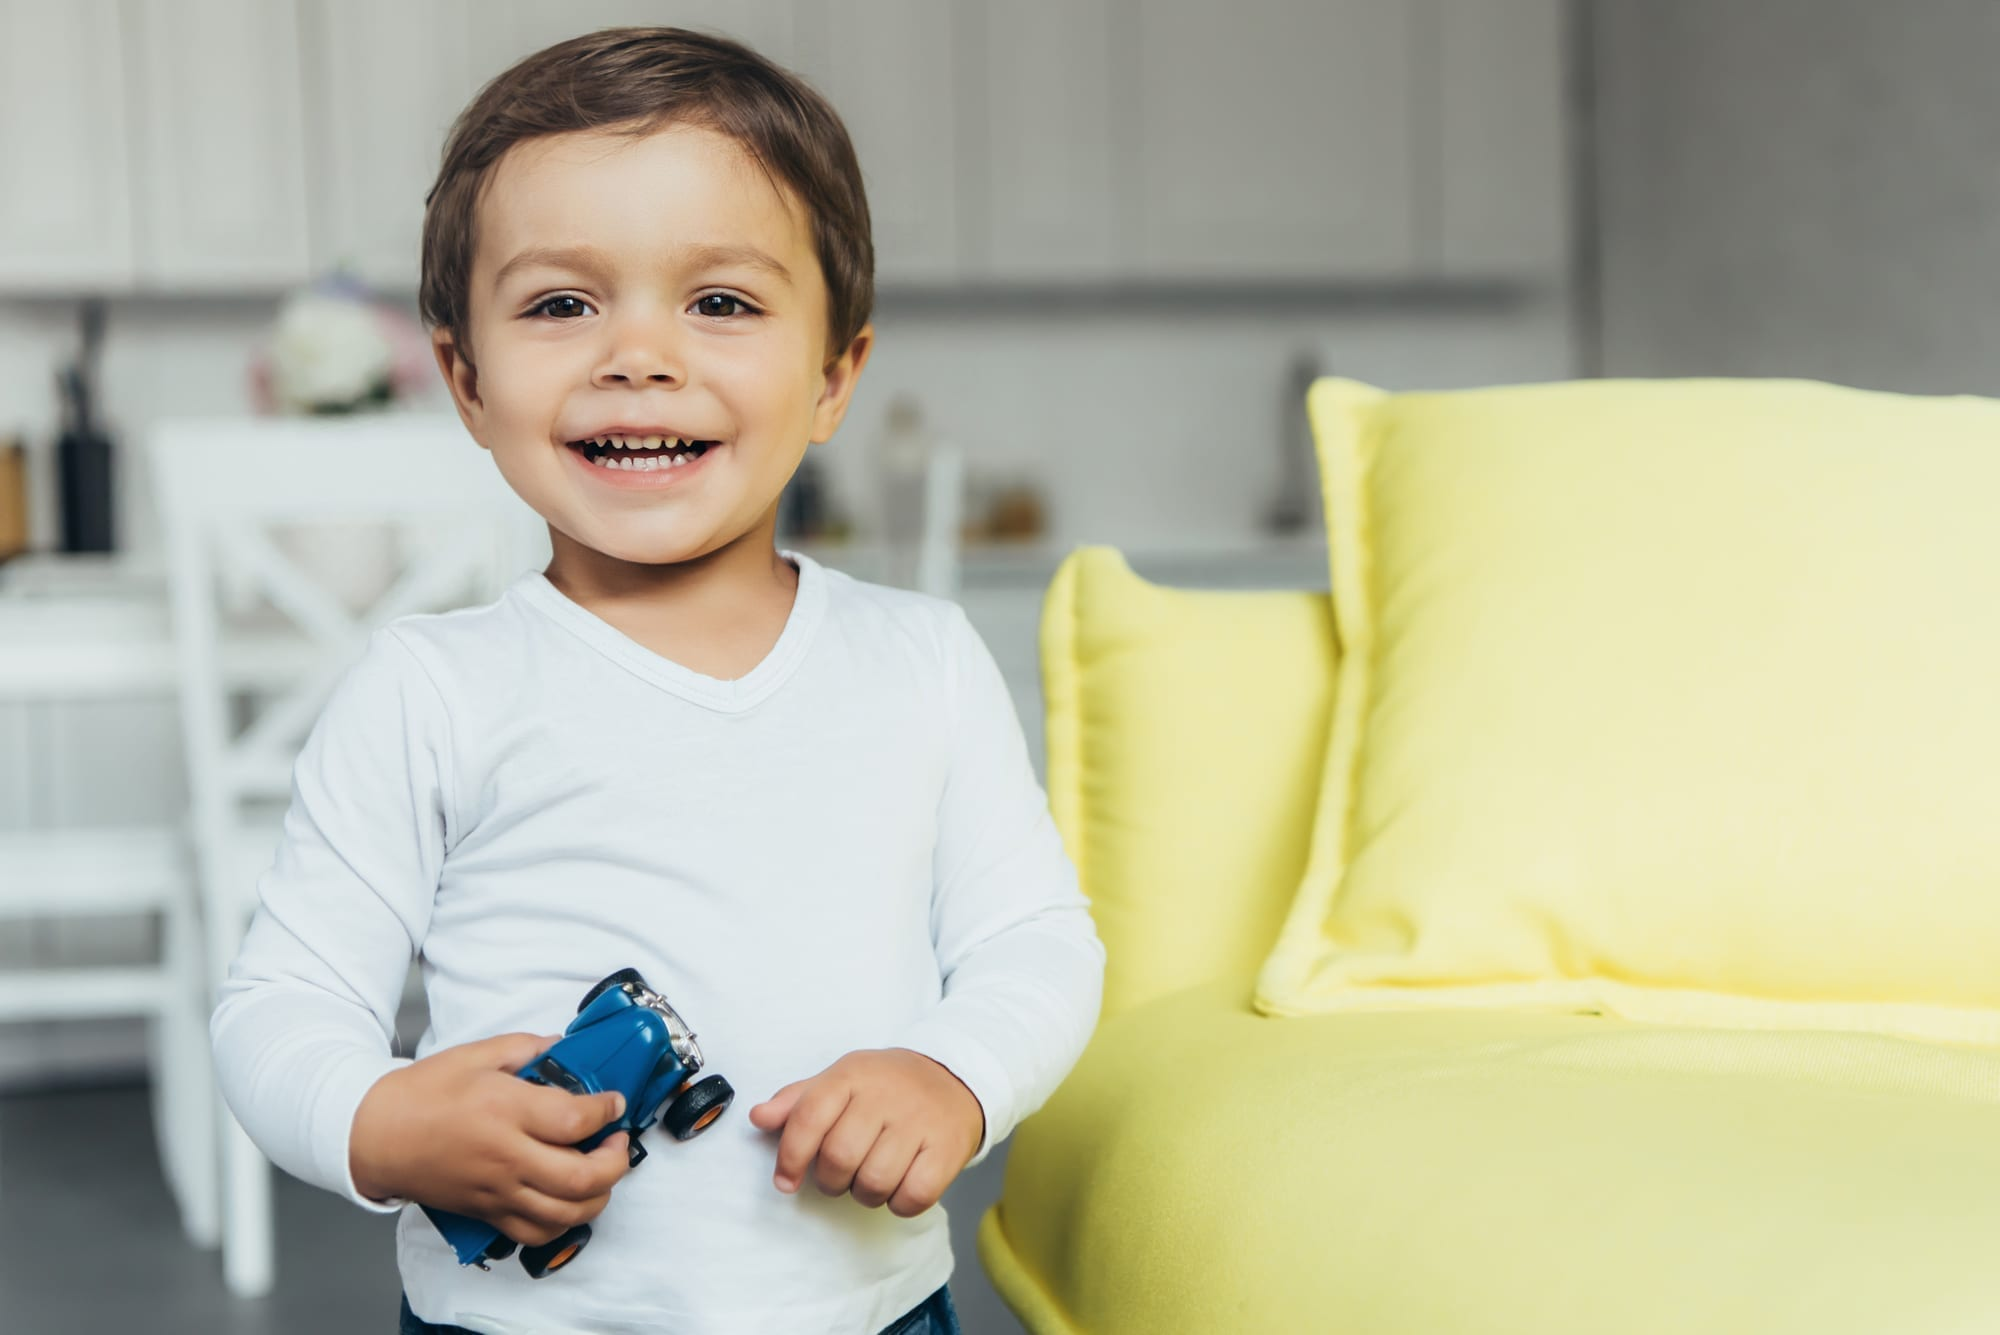 happy toddler with toy car